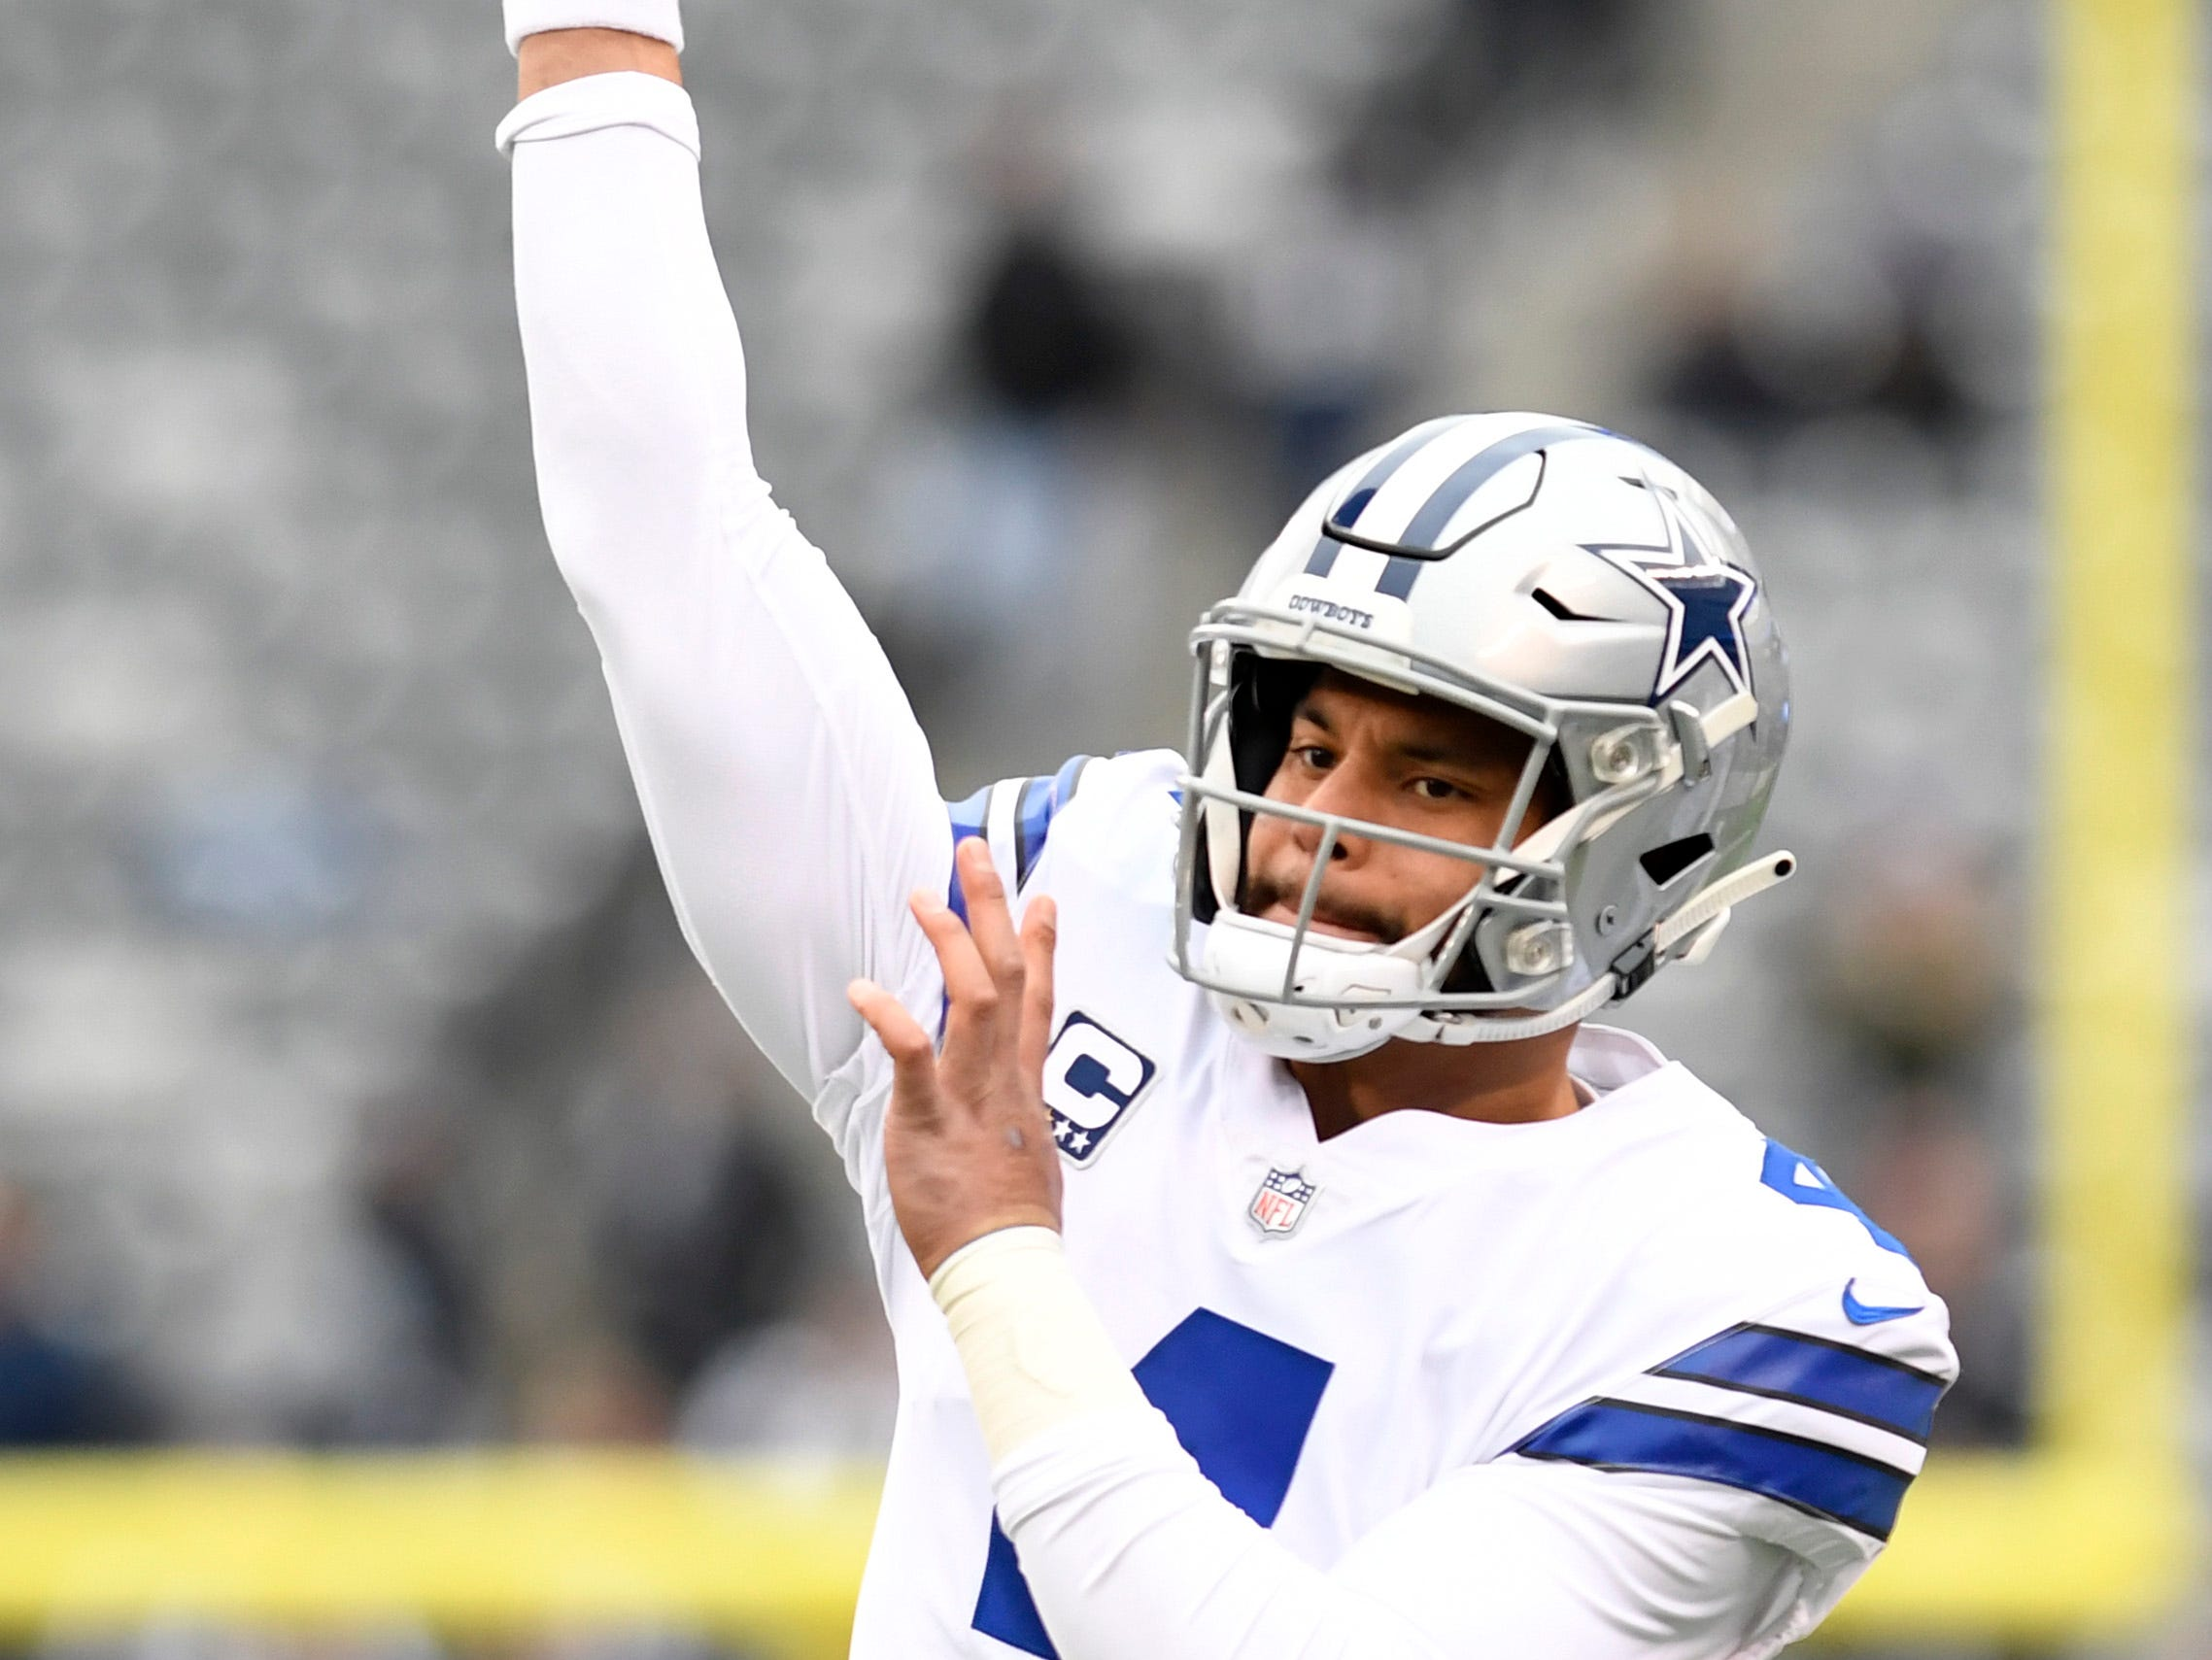 Dallas Cowboys quarterback Dak Prescott (4) throws the ball during warmups. The New York Giants face the Dallas Cowboys in the last regular season game on Sunday, Dec. 30, 2018, in East Rutherford.